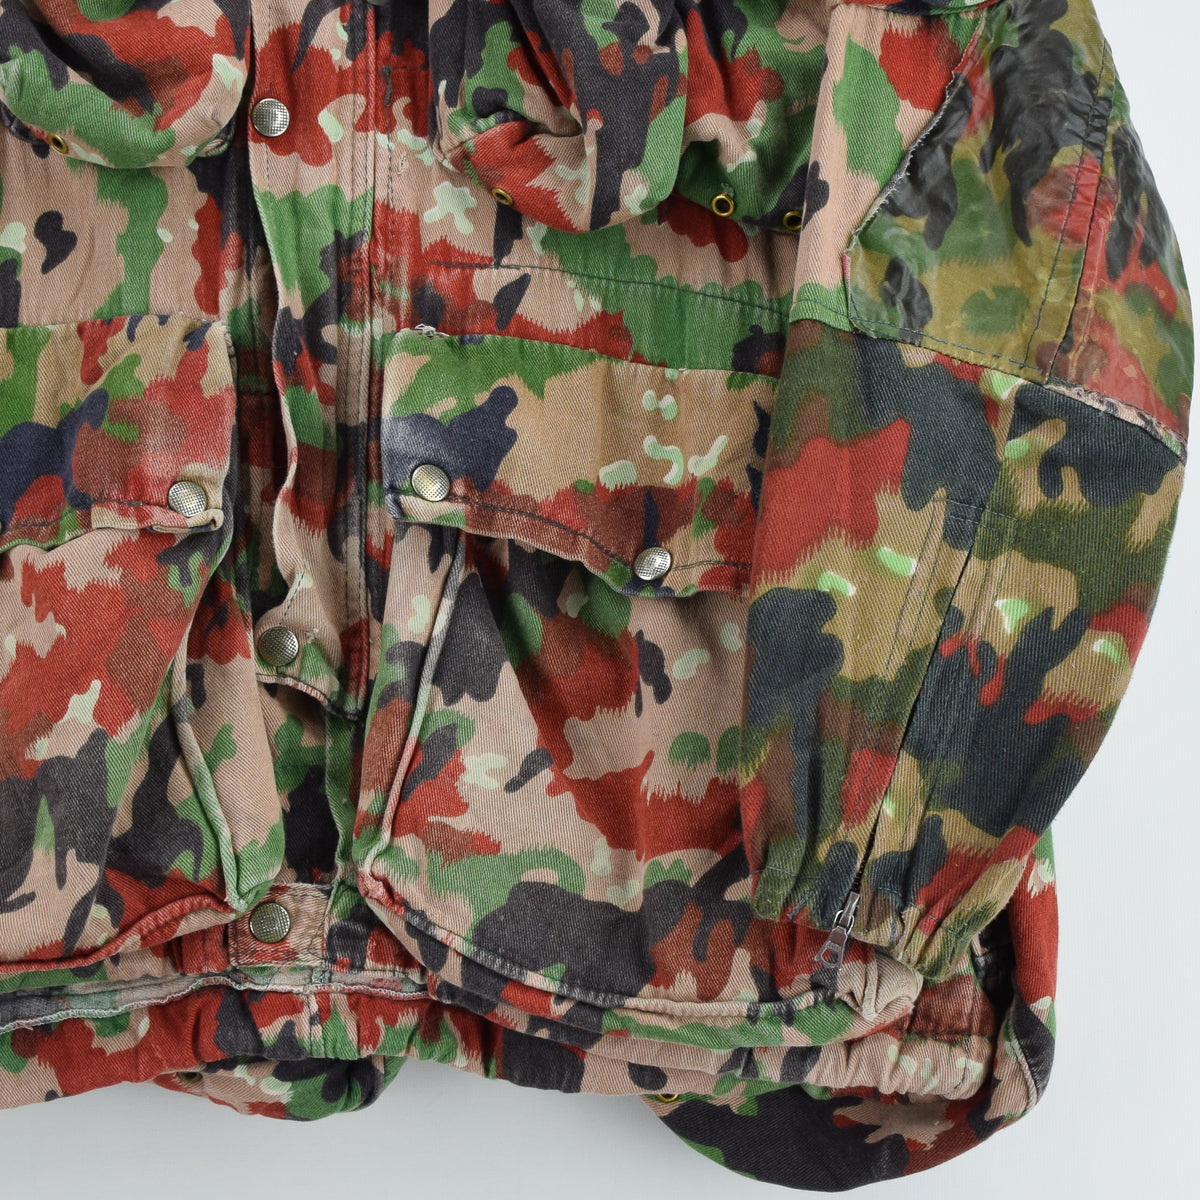 Vintage 70s Swiss Army Alpenflage Camo Swedish Sniper Combat Field Jacket S / M front hem